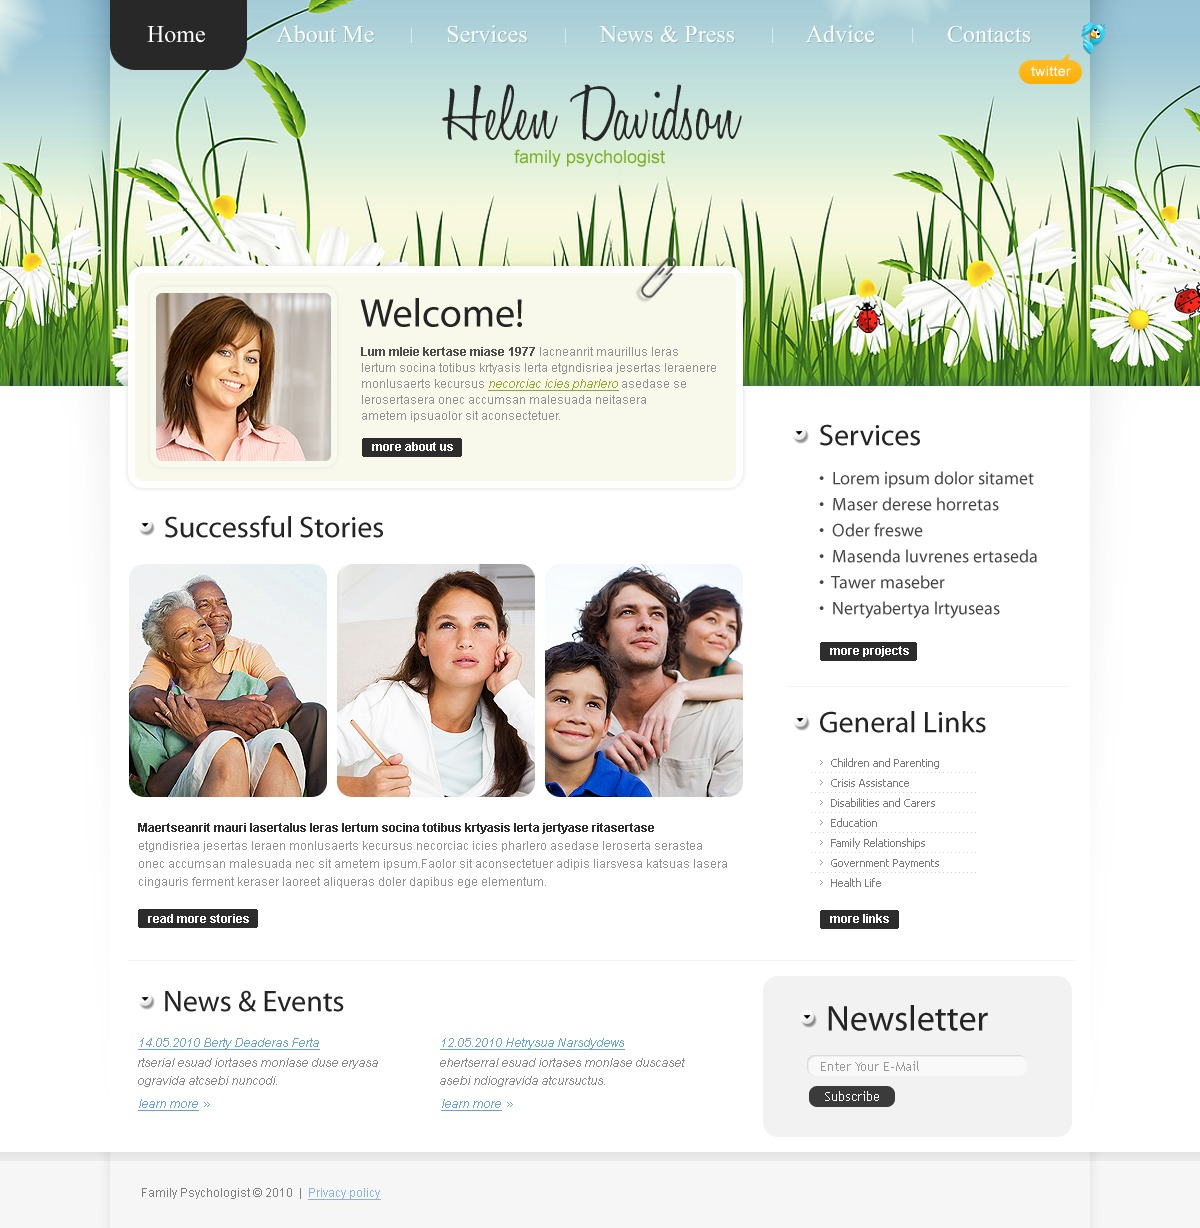 The Helen Davidson Family PSD Design 54068, one of the best PSD templates of its kind (family, medical, wide), also known as Helen Davidson family PSD template, psychologist PSD template, psychological PSD template, psycology PSD template, private mental PSD template, stress PSD template, anxiety PSD template, disorder PSD template, mood PSD template, trauma PSD template, abuse PSD template, health PSD template, private illness PSD template, specialist PSD template, confidentiality and related with Helen Davidson family, psychologist, psychological, psycology, private mental, stress, anxiety, disorder, mood, trauma, abuse, health, private illness, specialist, confidentiality, etc.